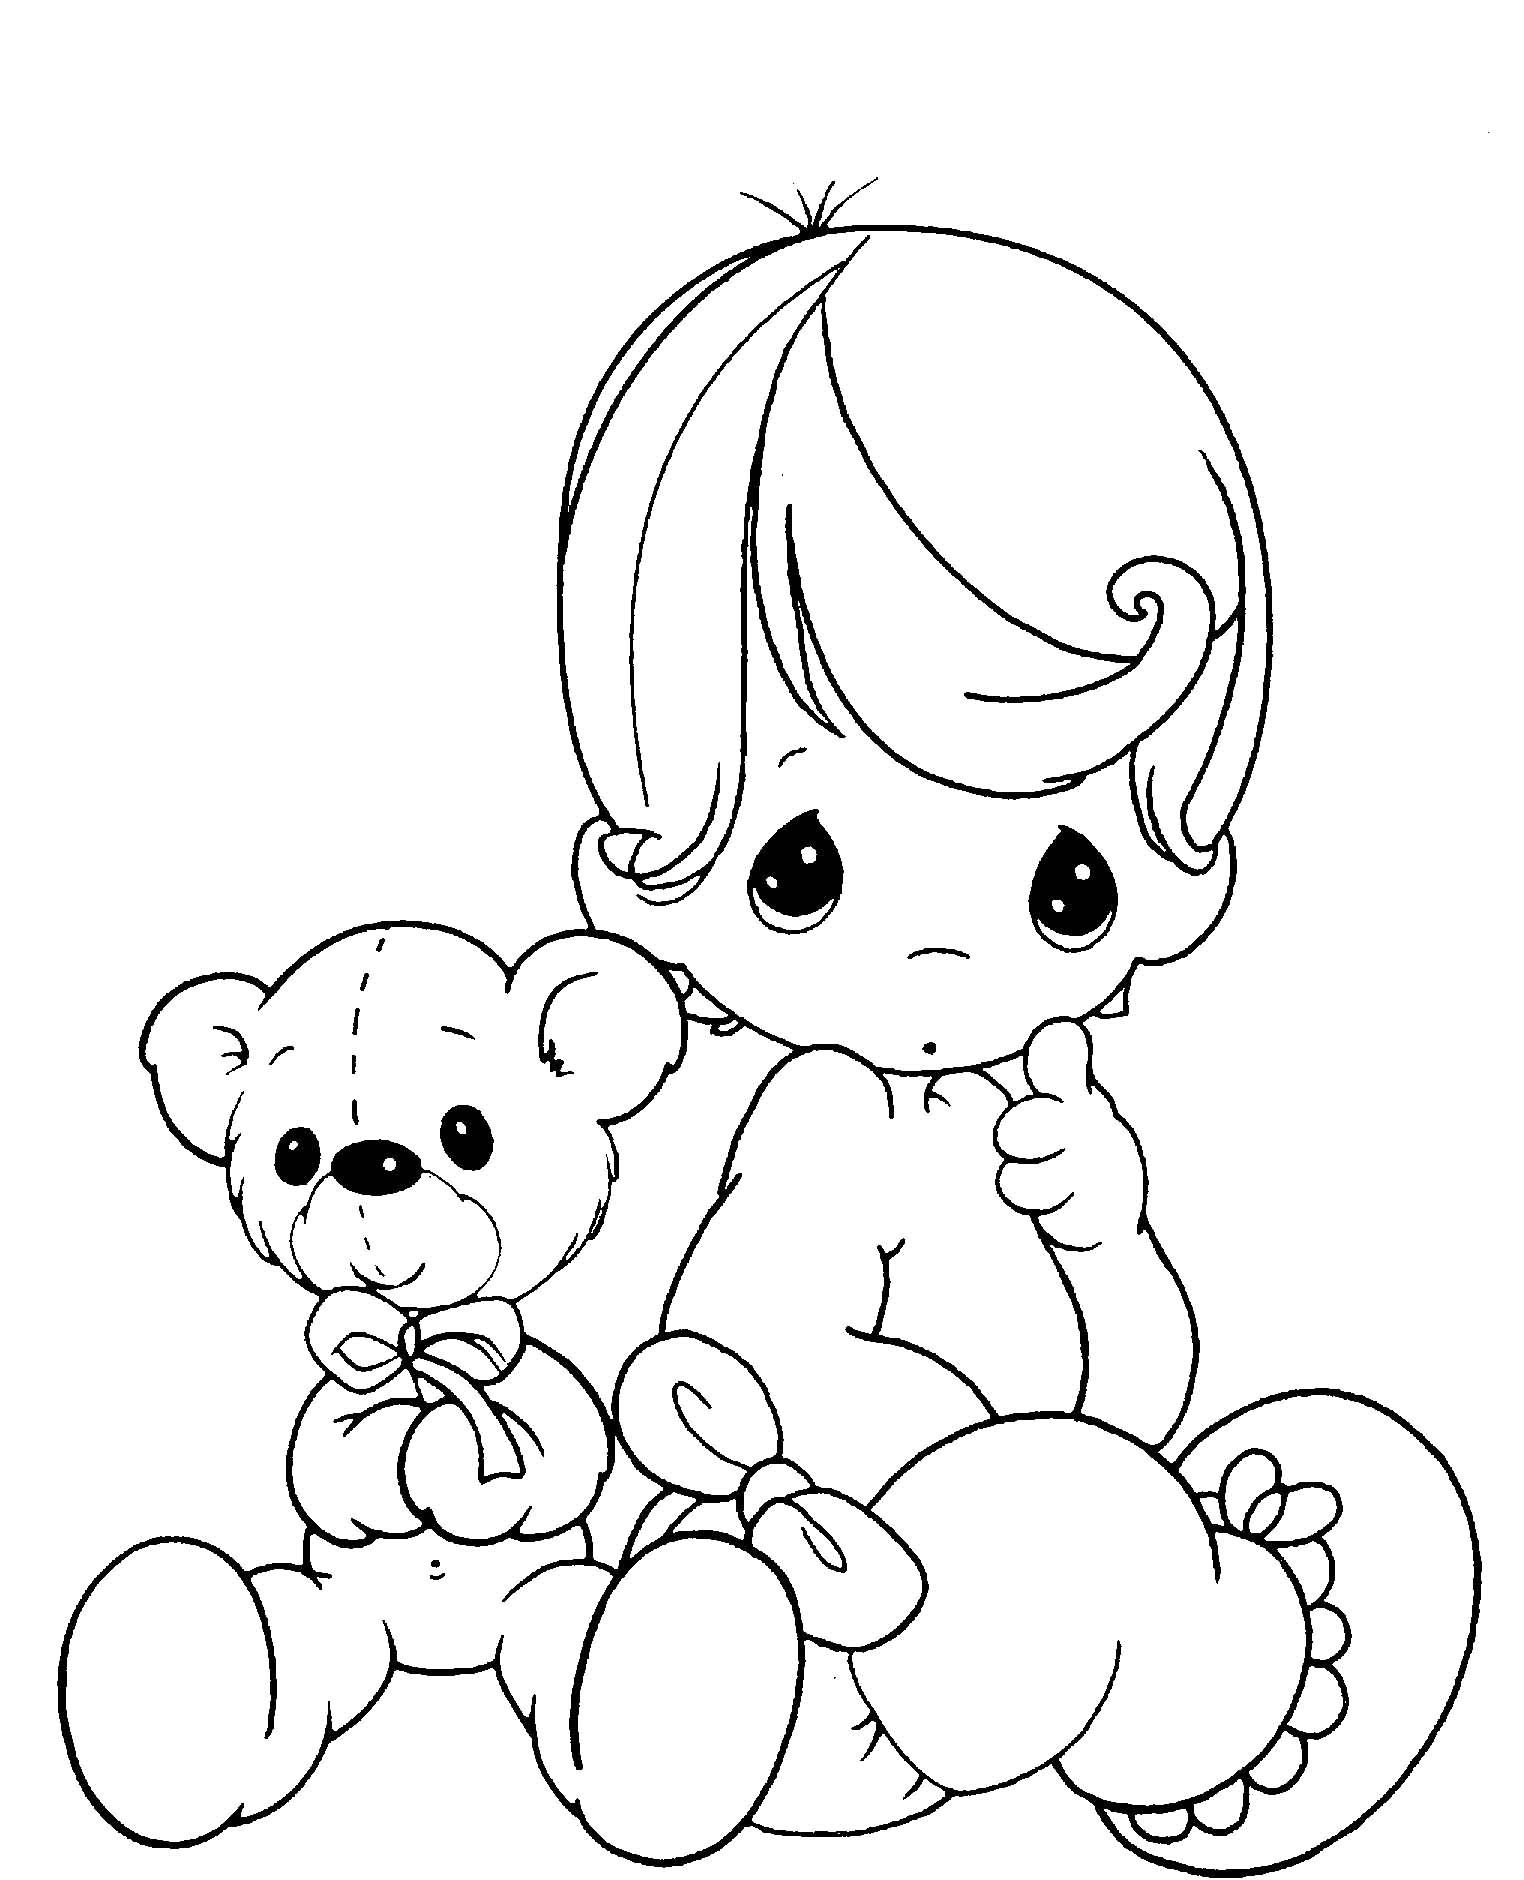 Baby and teddy bear precious moments coloring page free download